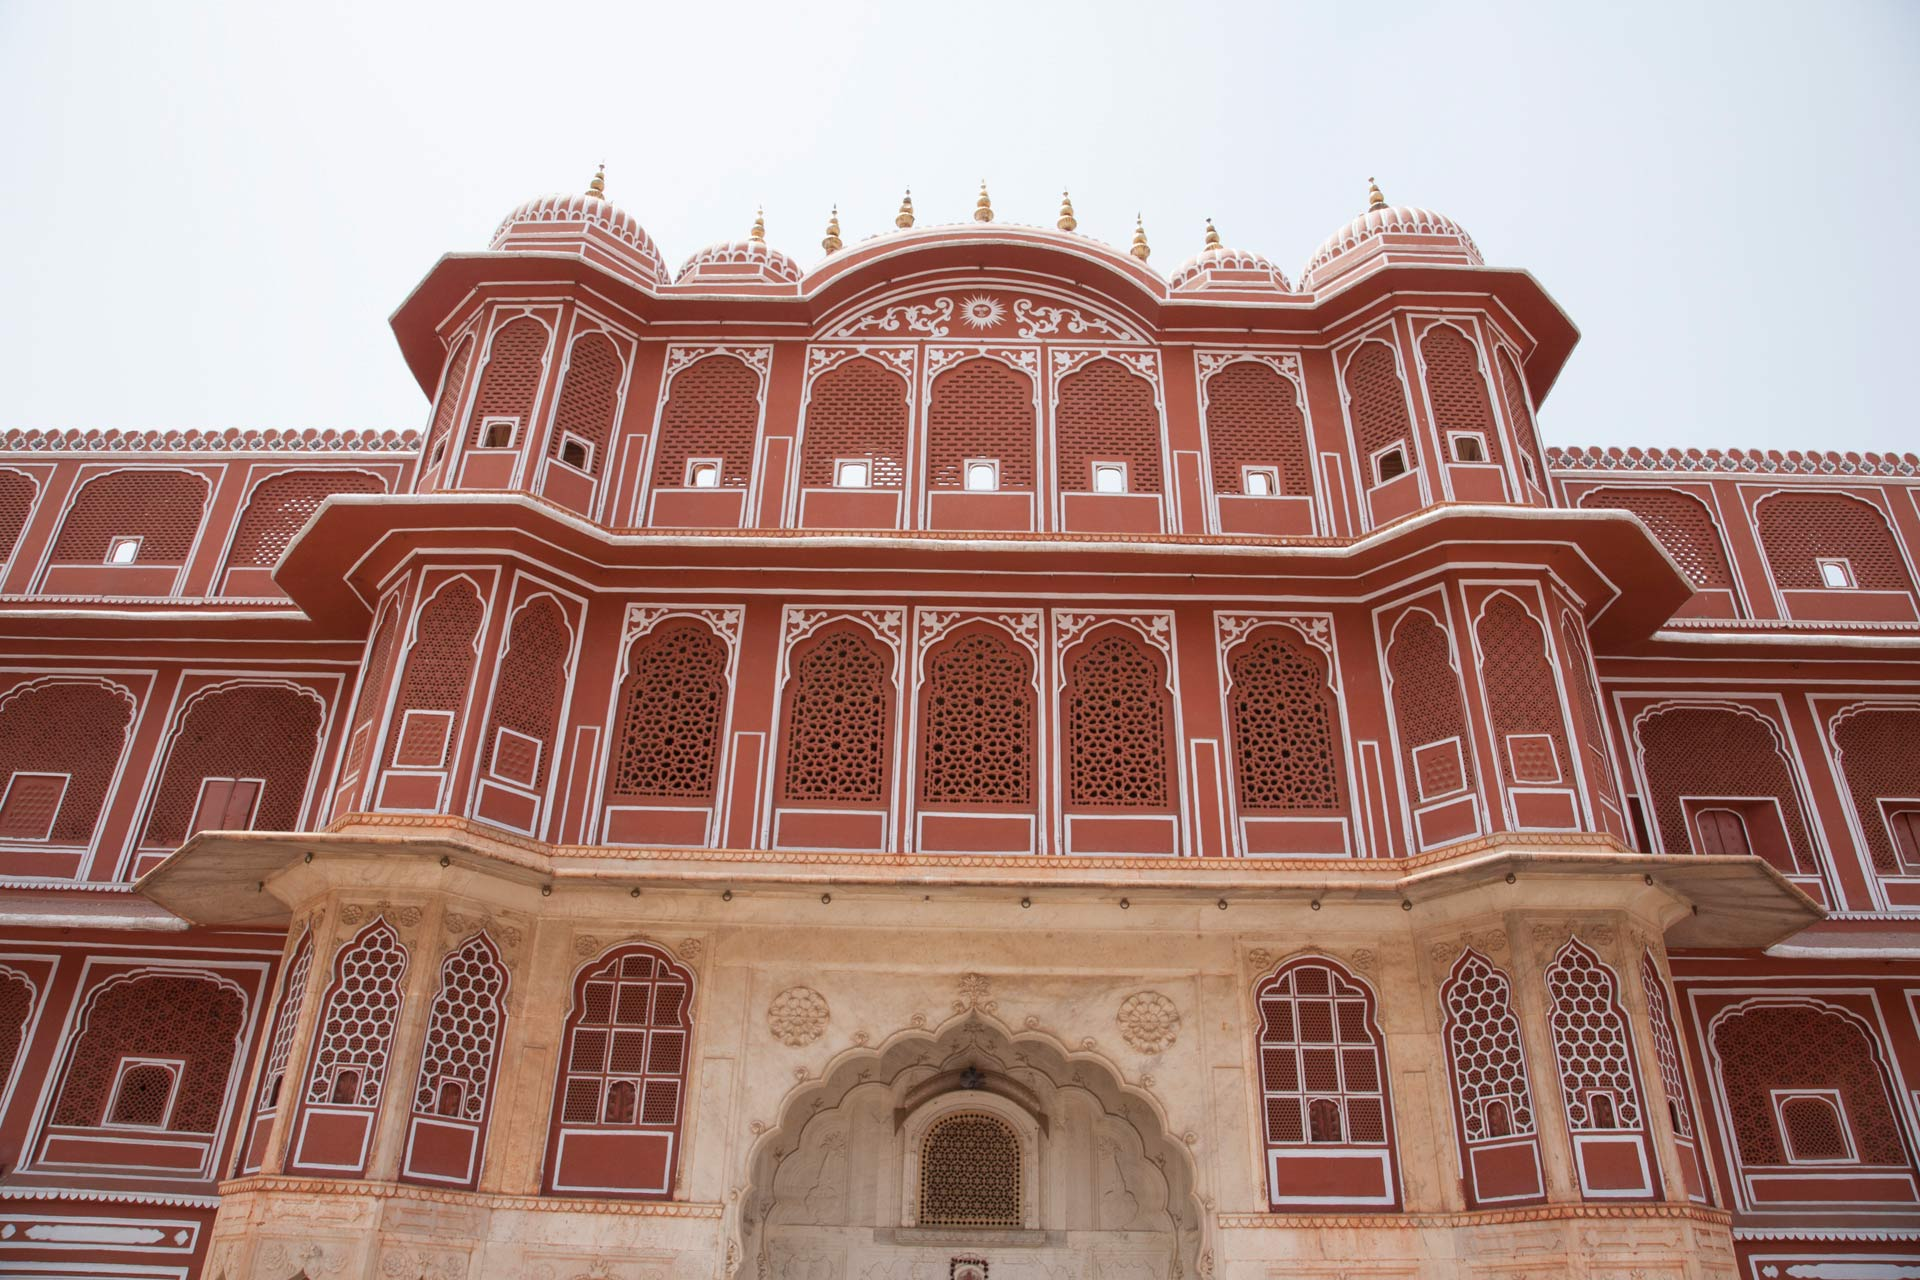 Pink Courtyard at the City Palace, Jaipur, Rajasthan, India